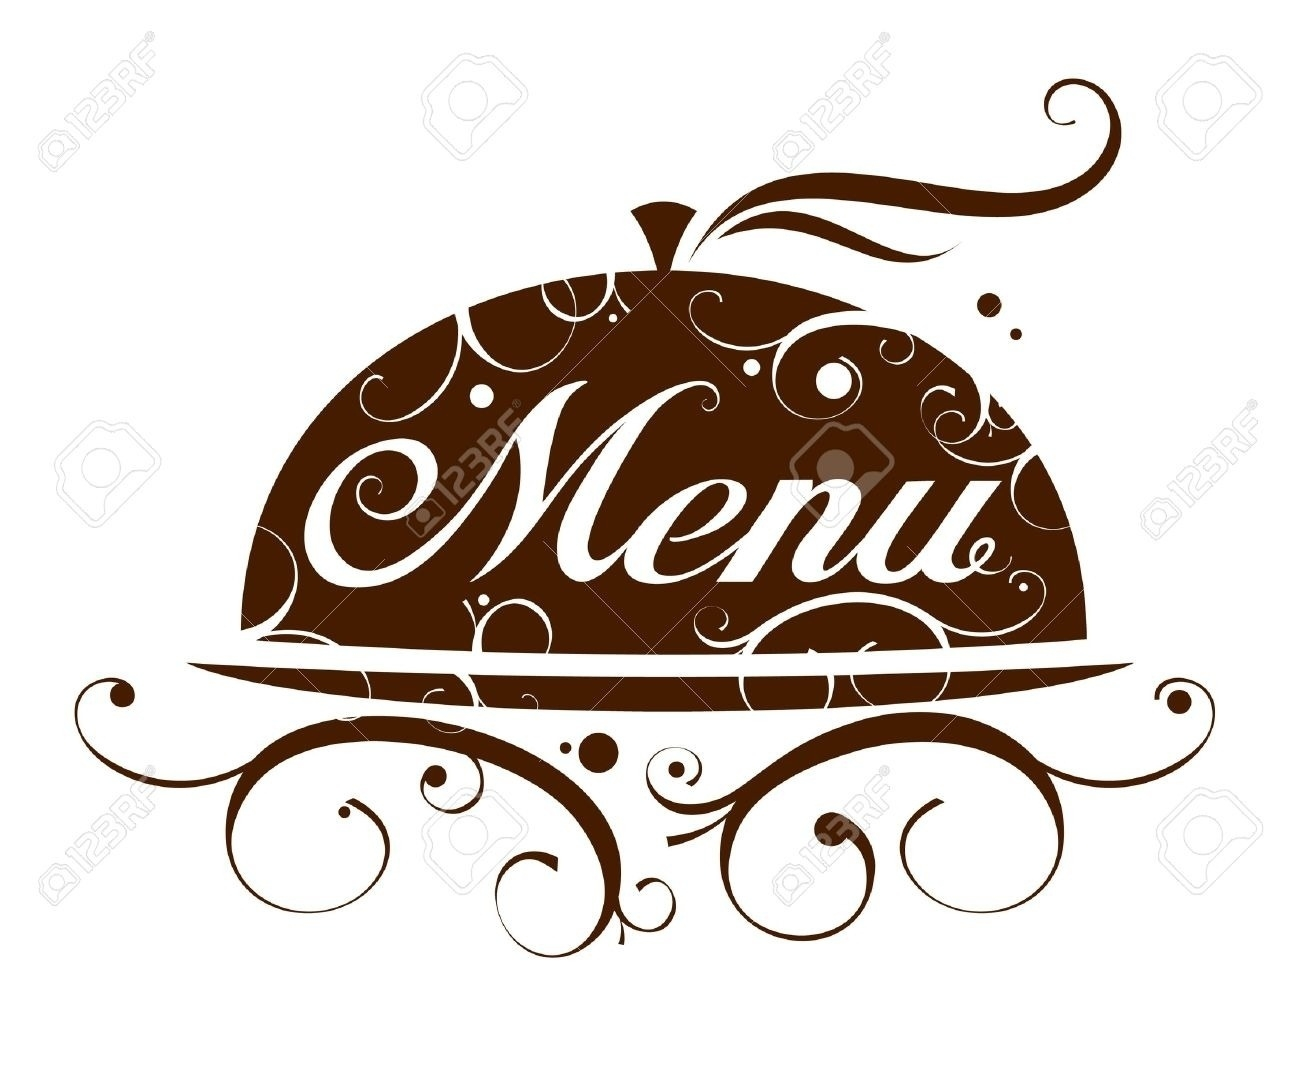 Dinner printables and world. Menu clipart